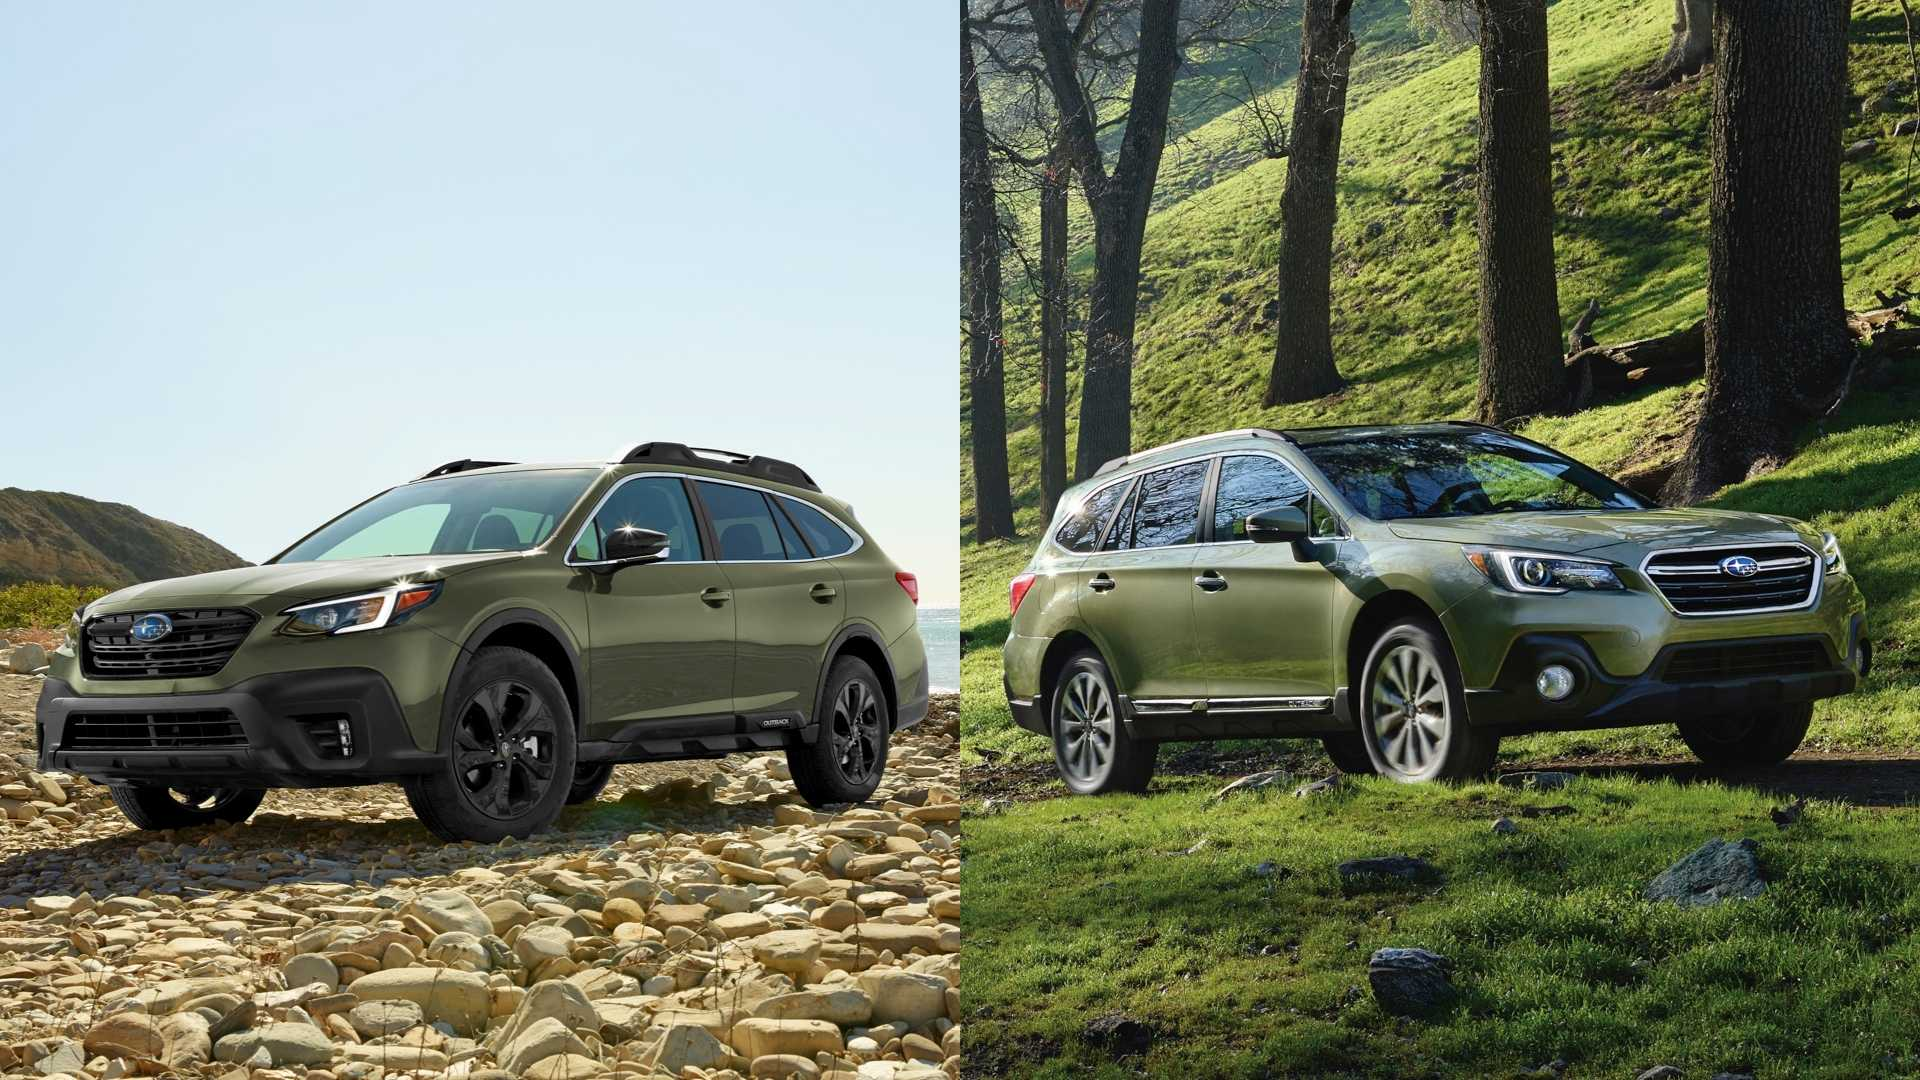 2020 Subaru Outback See The Changes Side By Side